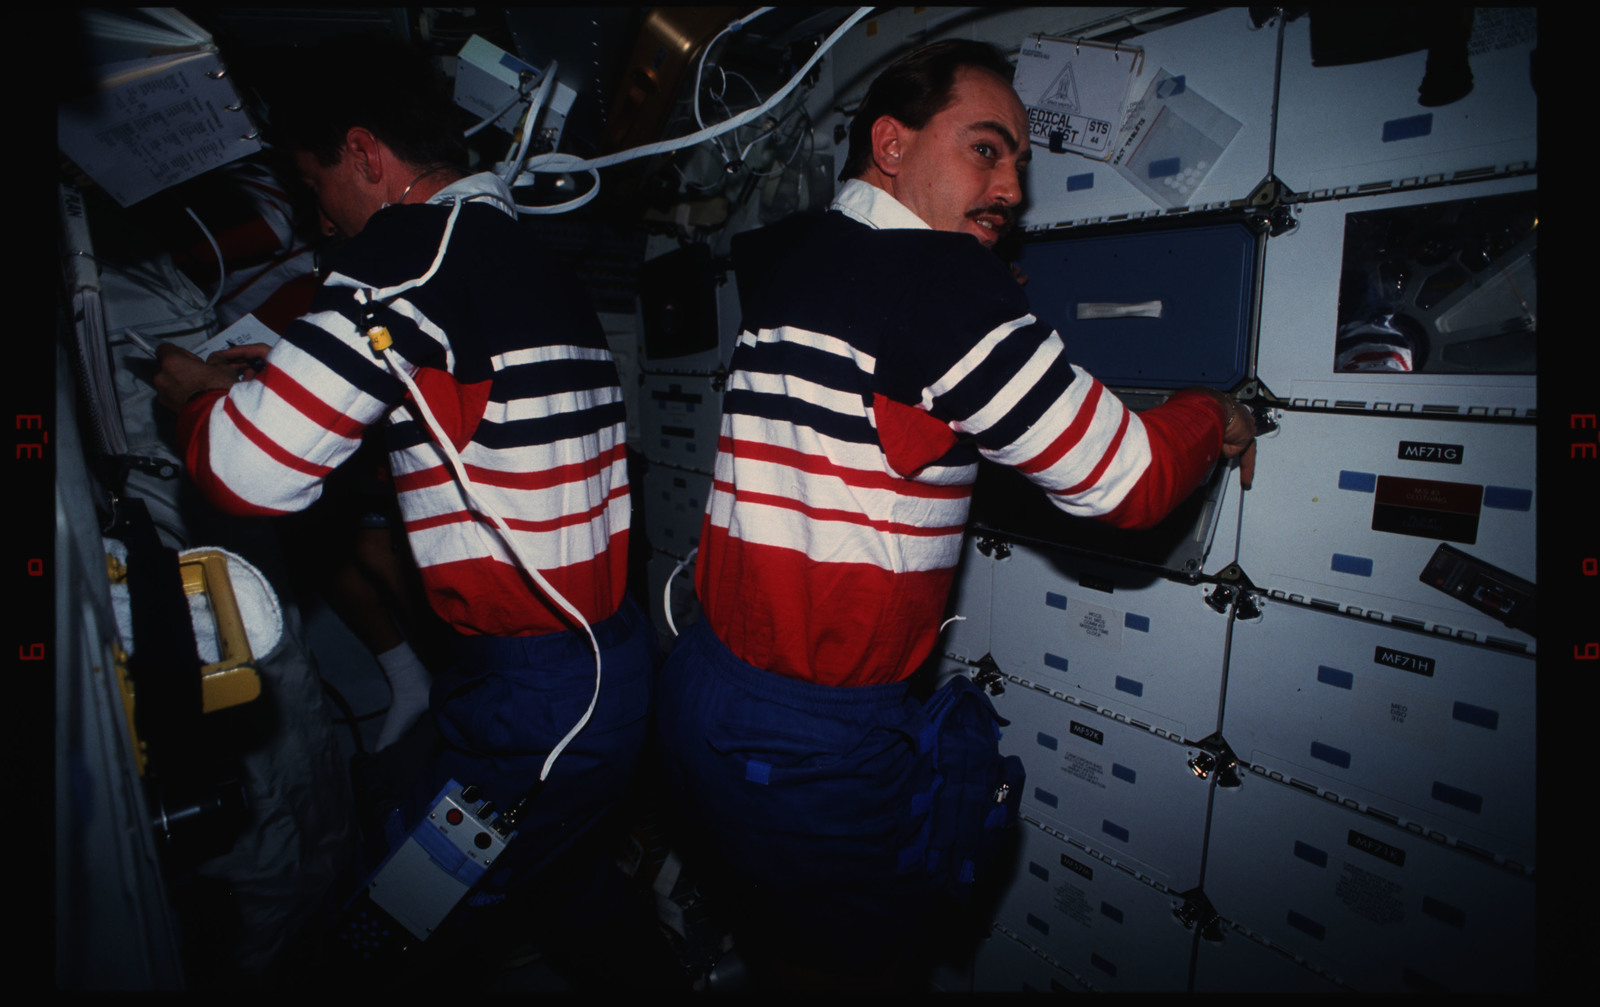 STS044-16-035 - STS-044 - STS-44 Pilot Henricks and PS Hennen work on OV-104's middeck